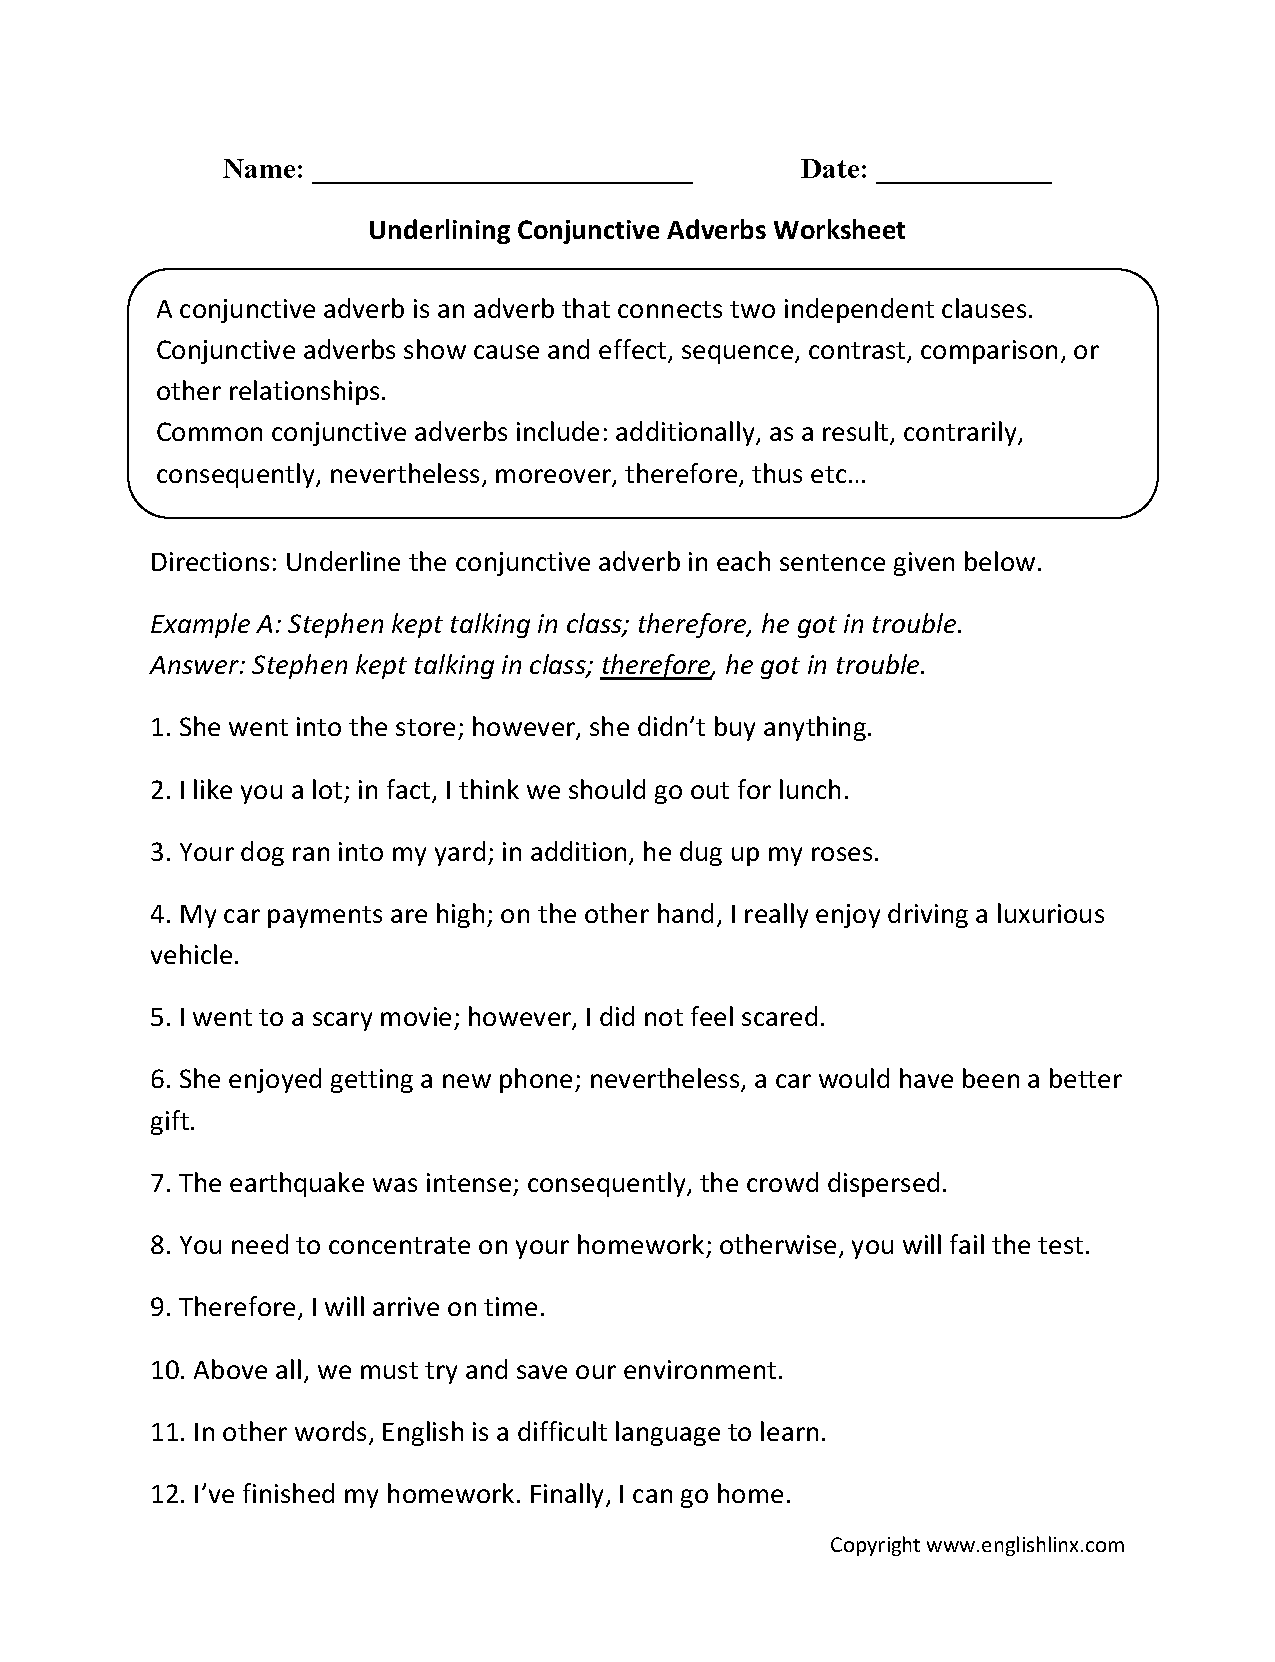 Proatmealus  Pleasing Englishlinxcom  Conjunctions Worksheets With Great Worksheet With Delightful Telling Time Free Worksheets Also Sentence Fragments And Run Ons Worksheet In Addition Multiplication Color By Number Worksheet And Printable Algebra Worksheets With Answers As Well As Chemical Equation Balancing Worksheet Additionally Dialogue Punctuation Worksheet From Englishlinxcom With Proatmealus  Great Englishlinxcom  Conjunctions Worksheets With Delightful Worksheet And Pleasing Telling Time Free Worksheets Also Sentence Fragments And Run Ons Worksheet In Addition Multiplication Color By Number Worksheet From Englishlinxcom